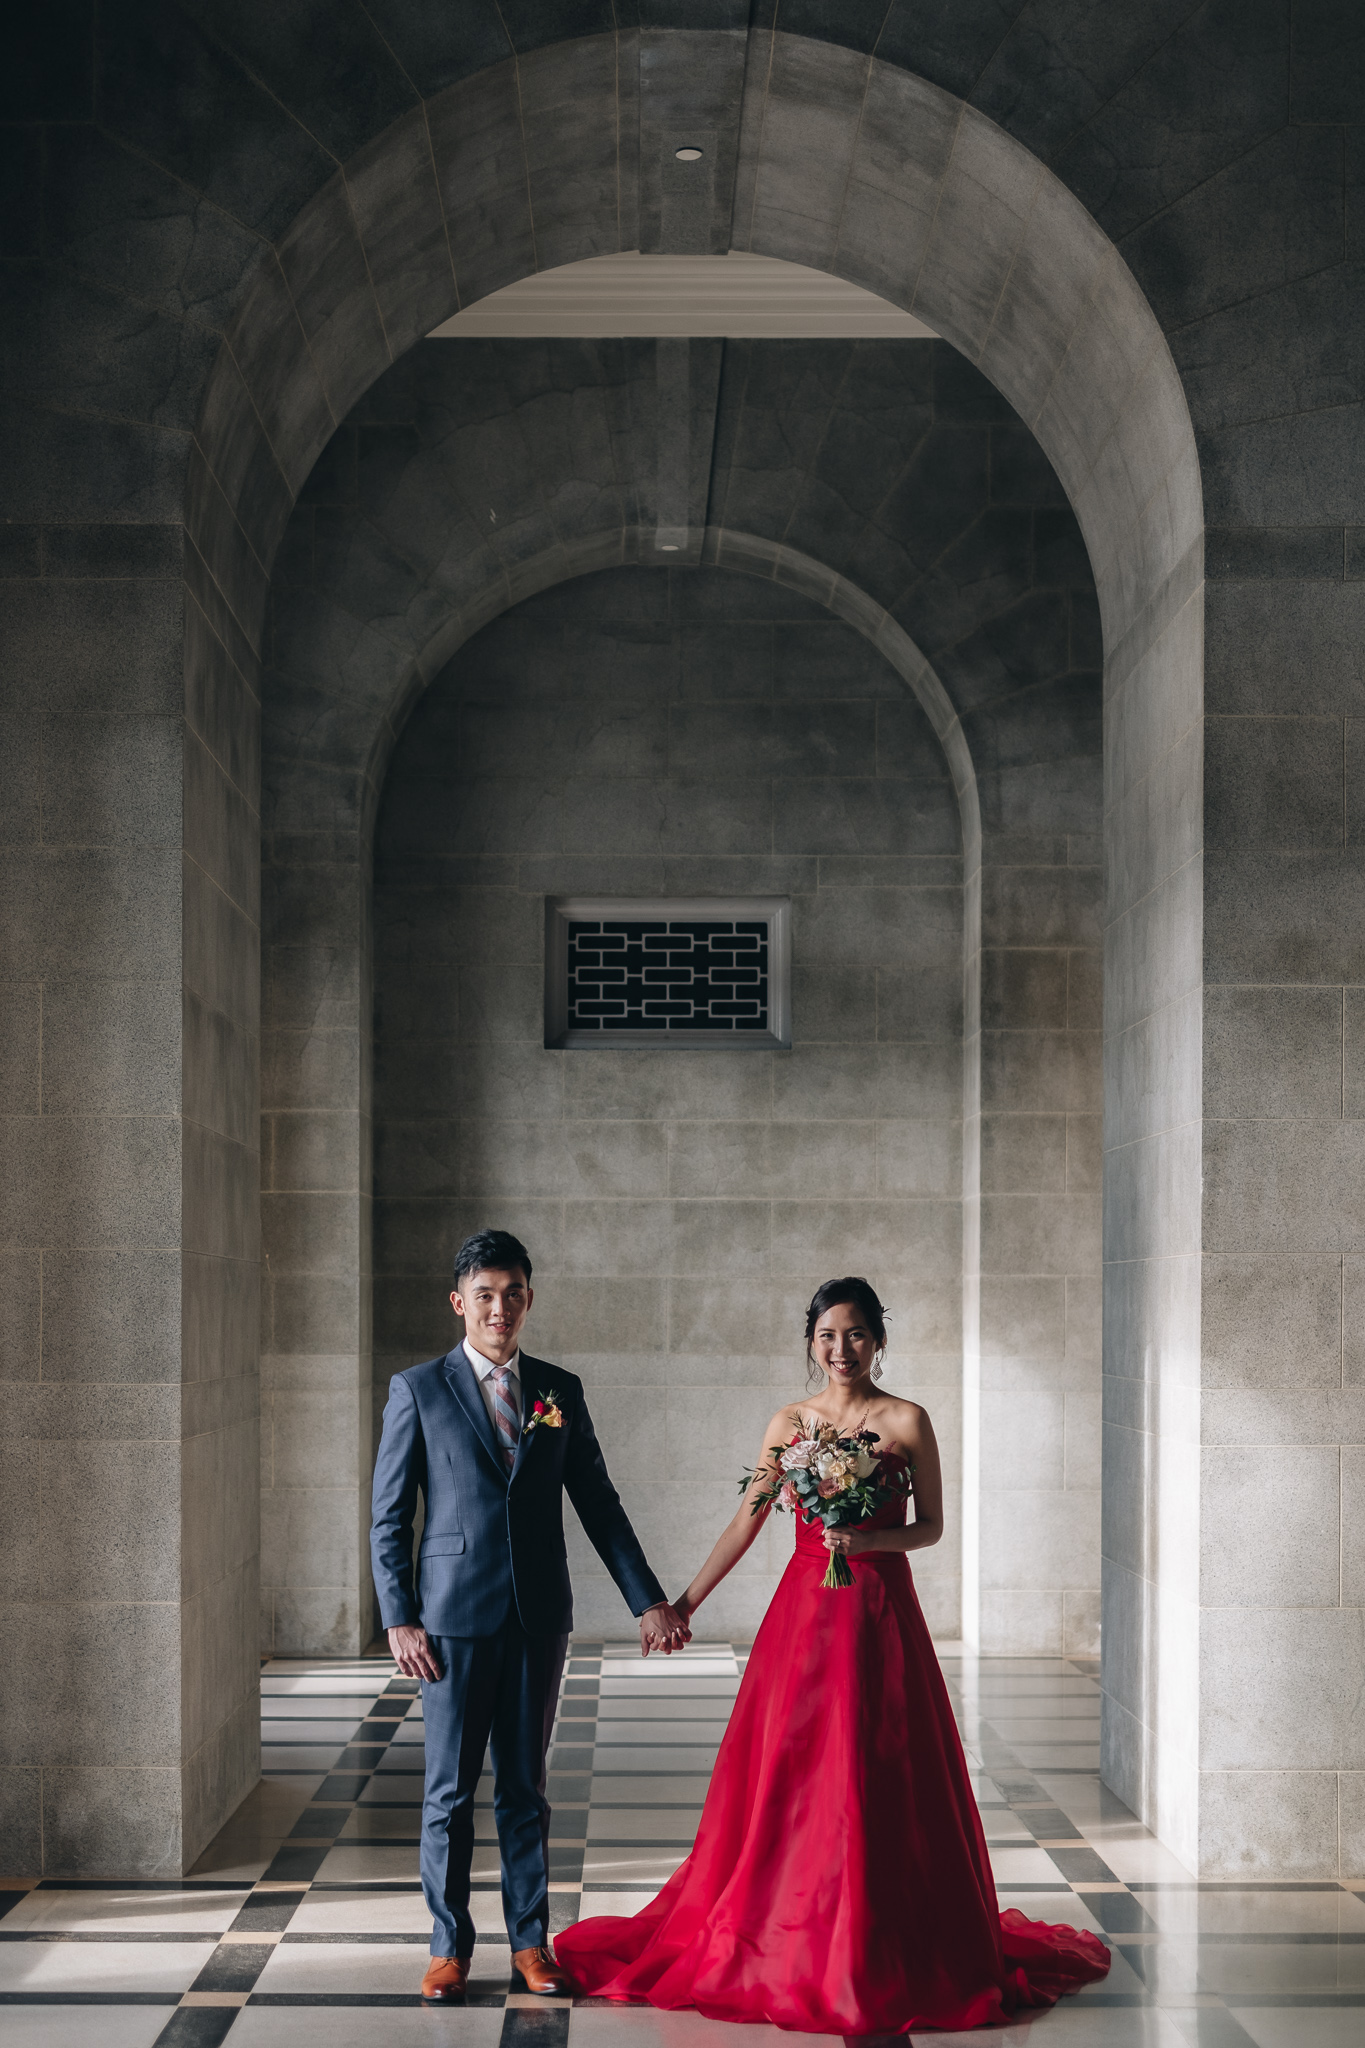 Kenneth & Lixin Pre-Wed (resized for sharing) - 021.jpg